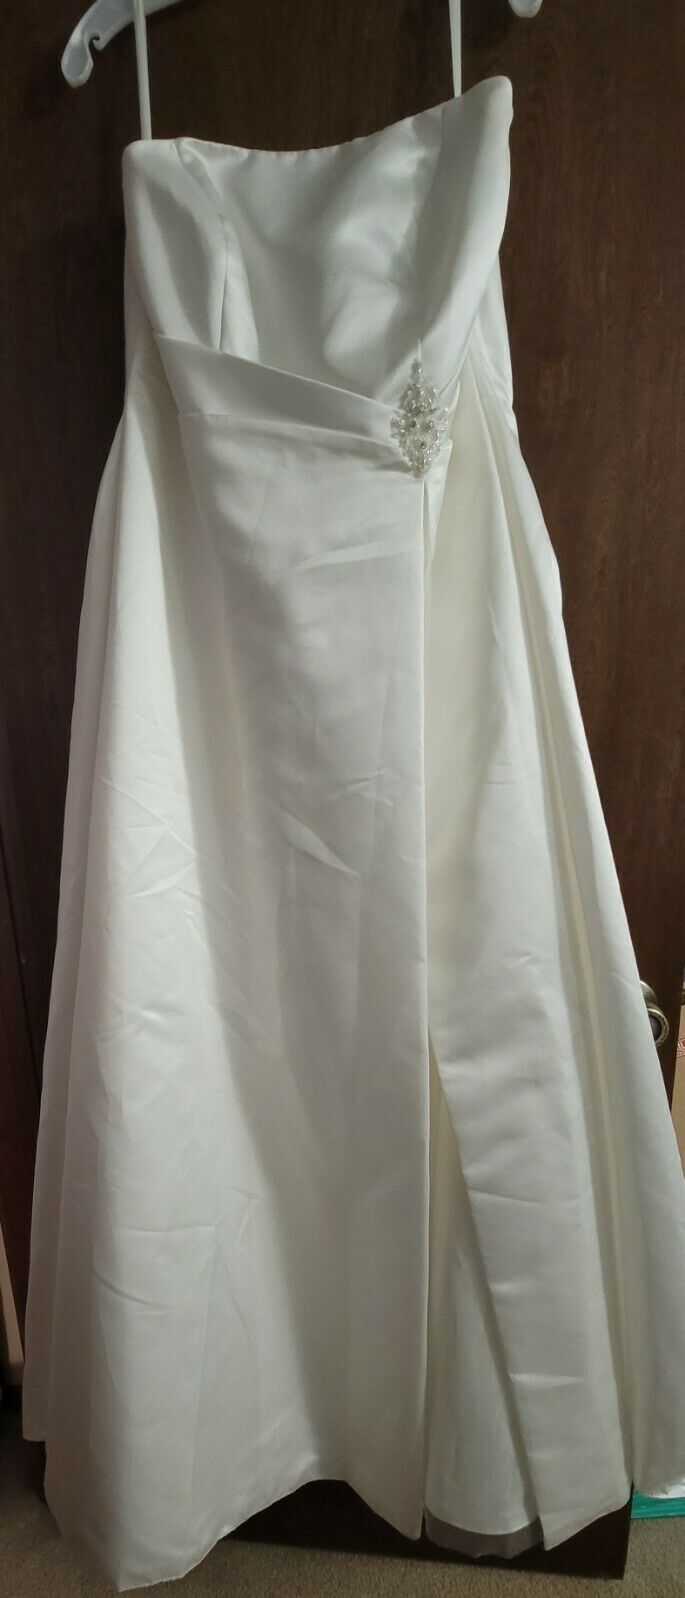 David's Bridal Wedding Dress Plus Size 20W Ruched A-Line Ivory, Lined Tulle